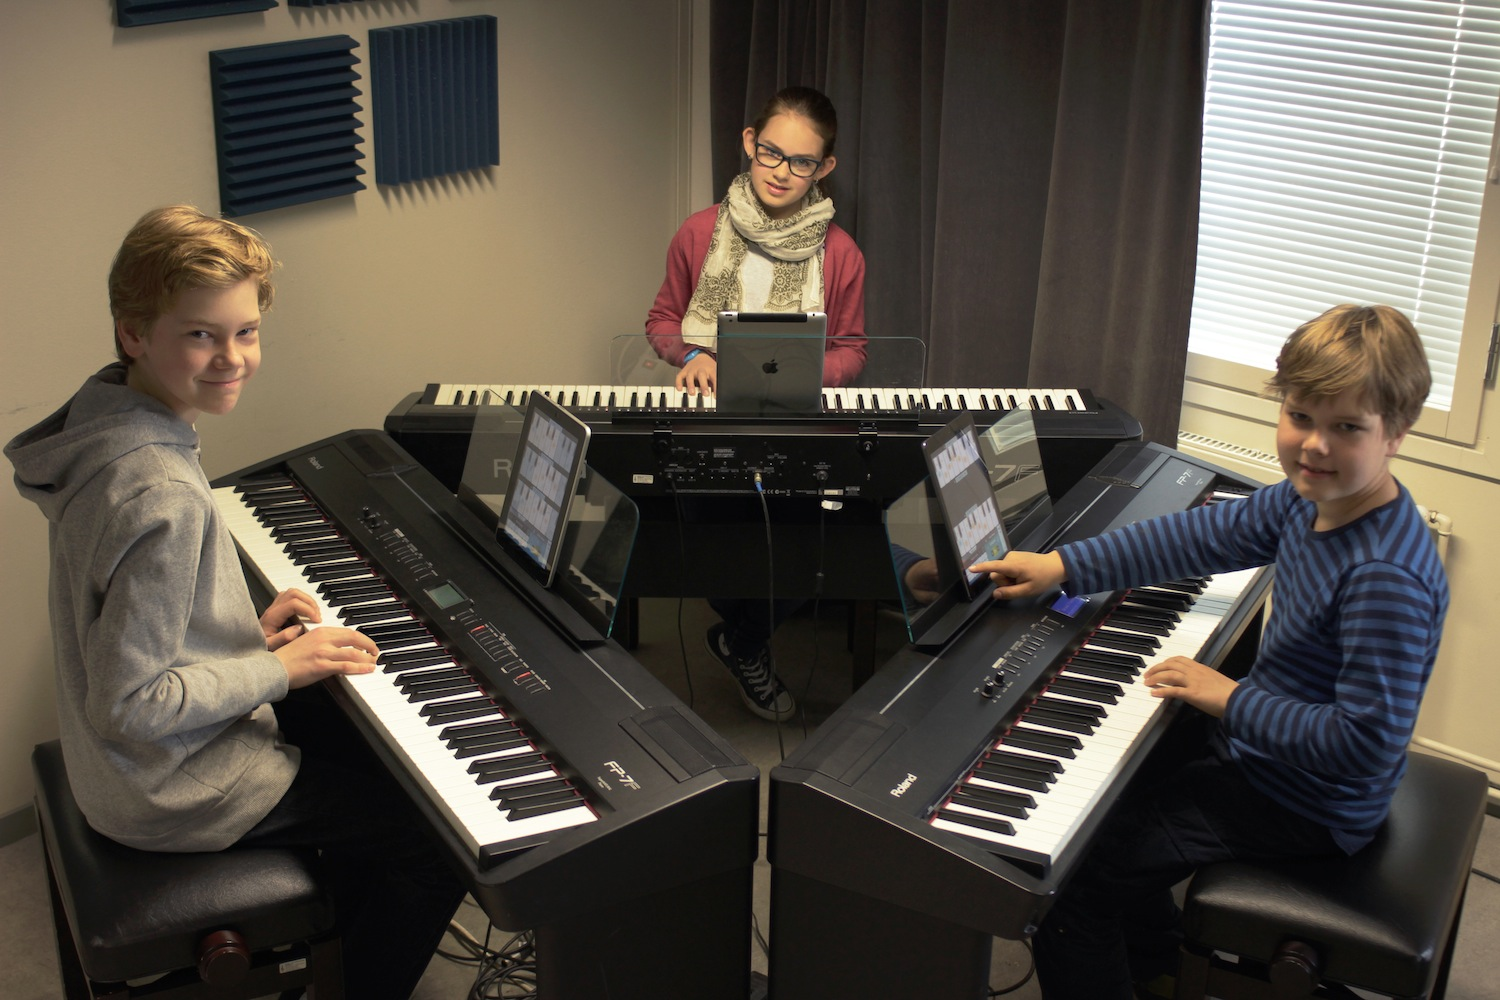 Play piano or keyboard in a group